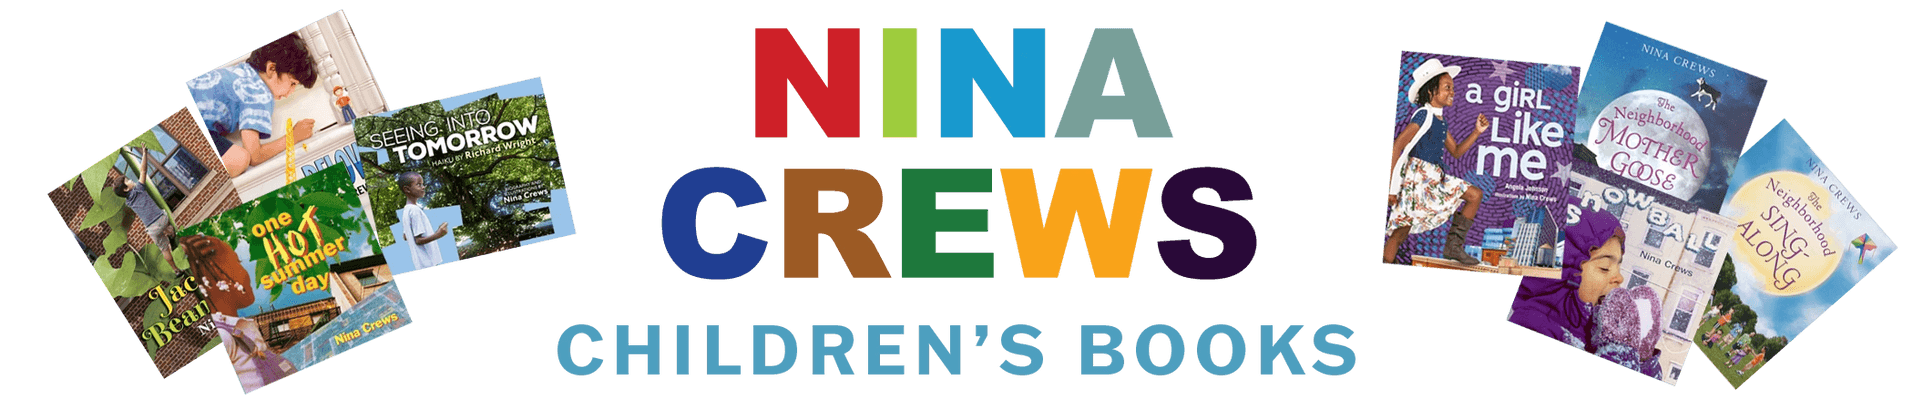 Nina Crews Children's Books